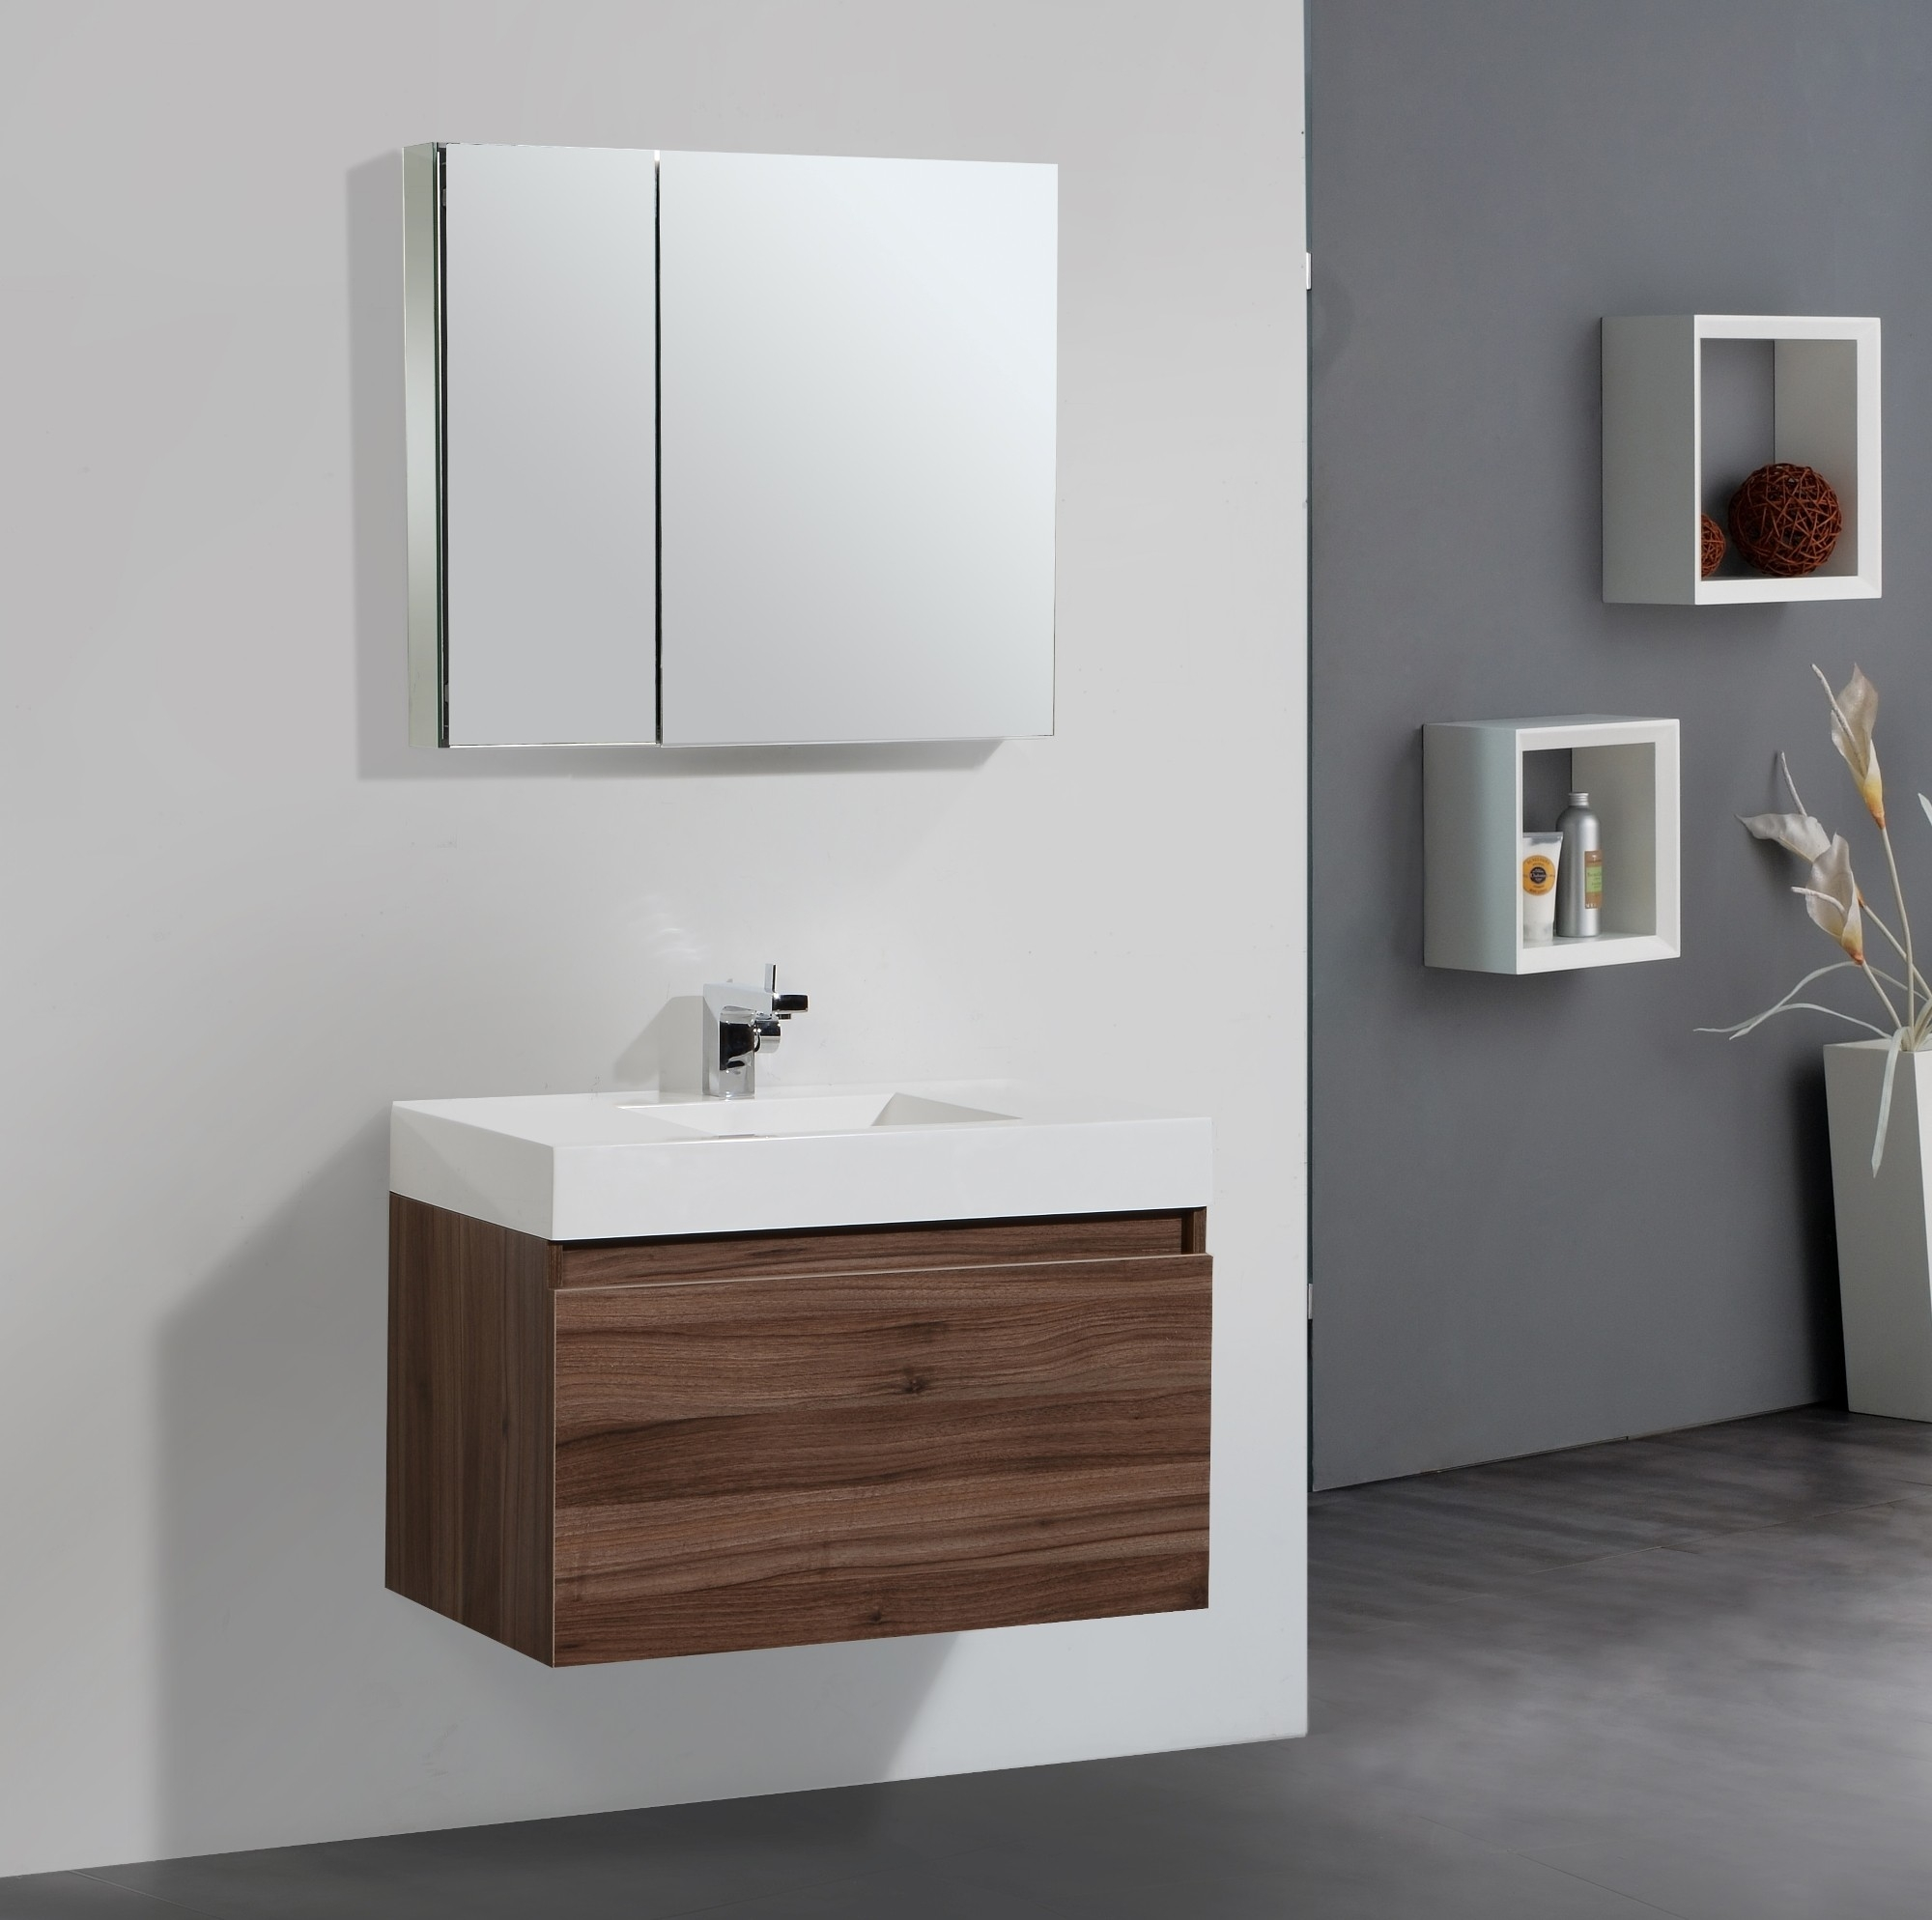 Permalink to Bathroom Cabinets With Washbasin